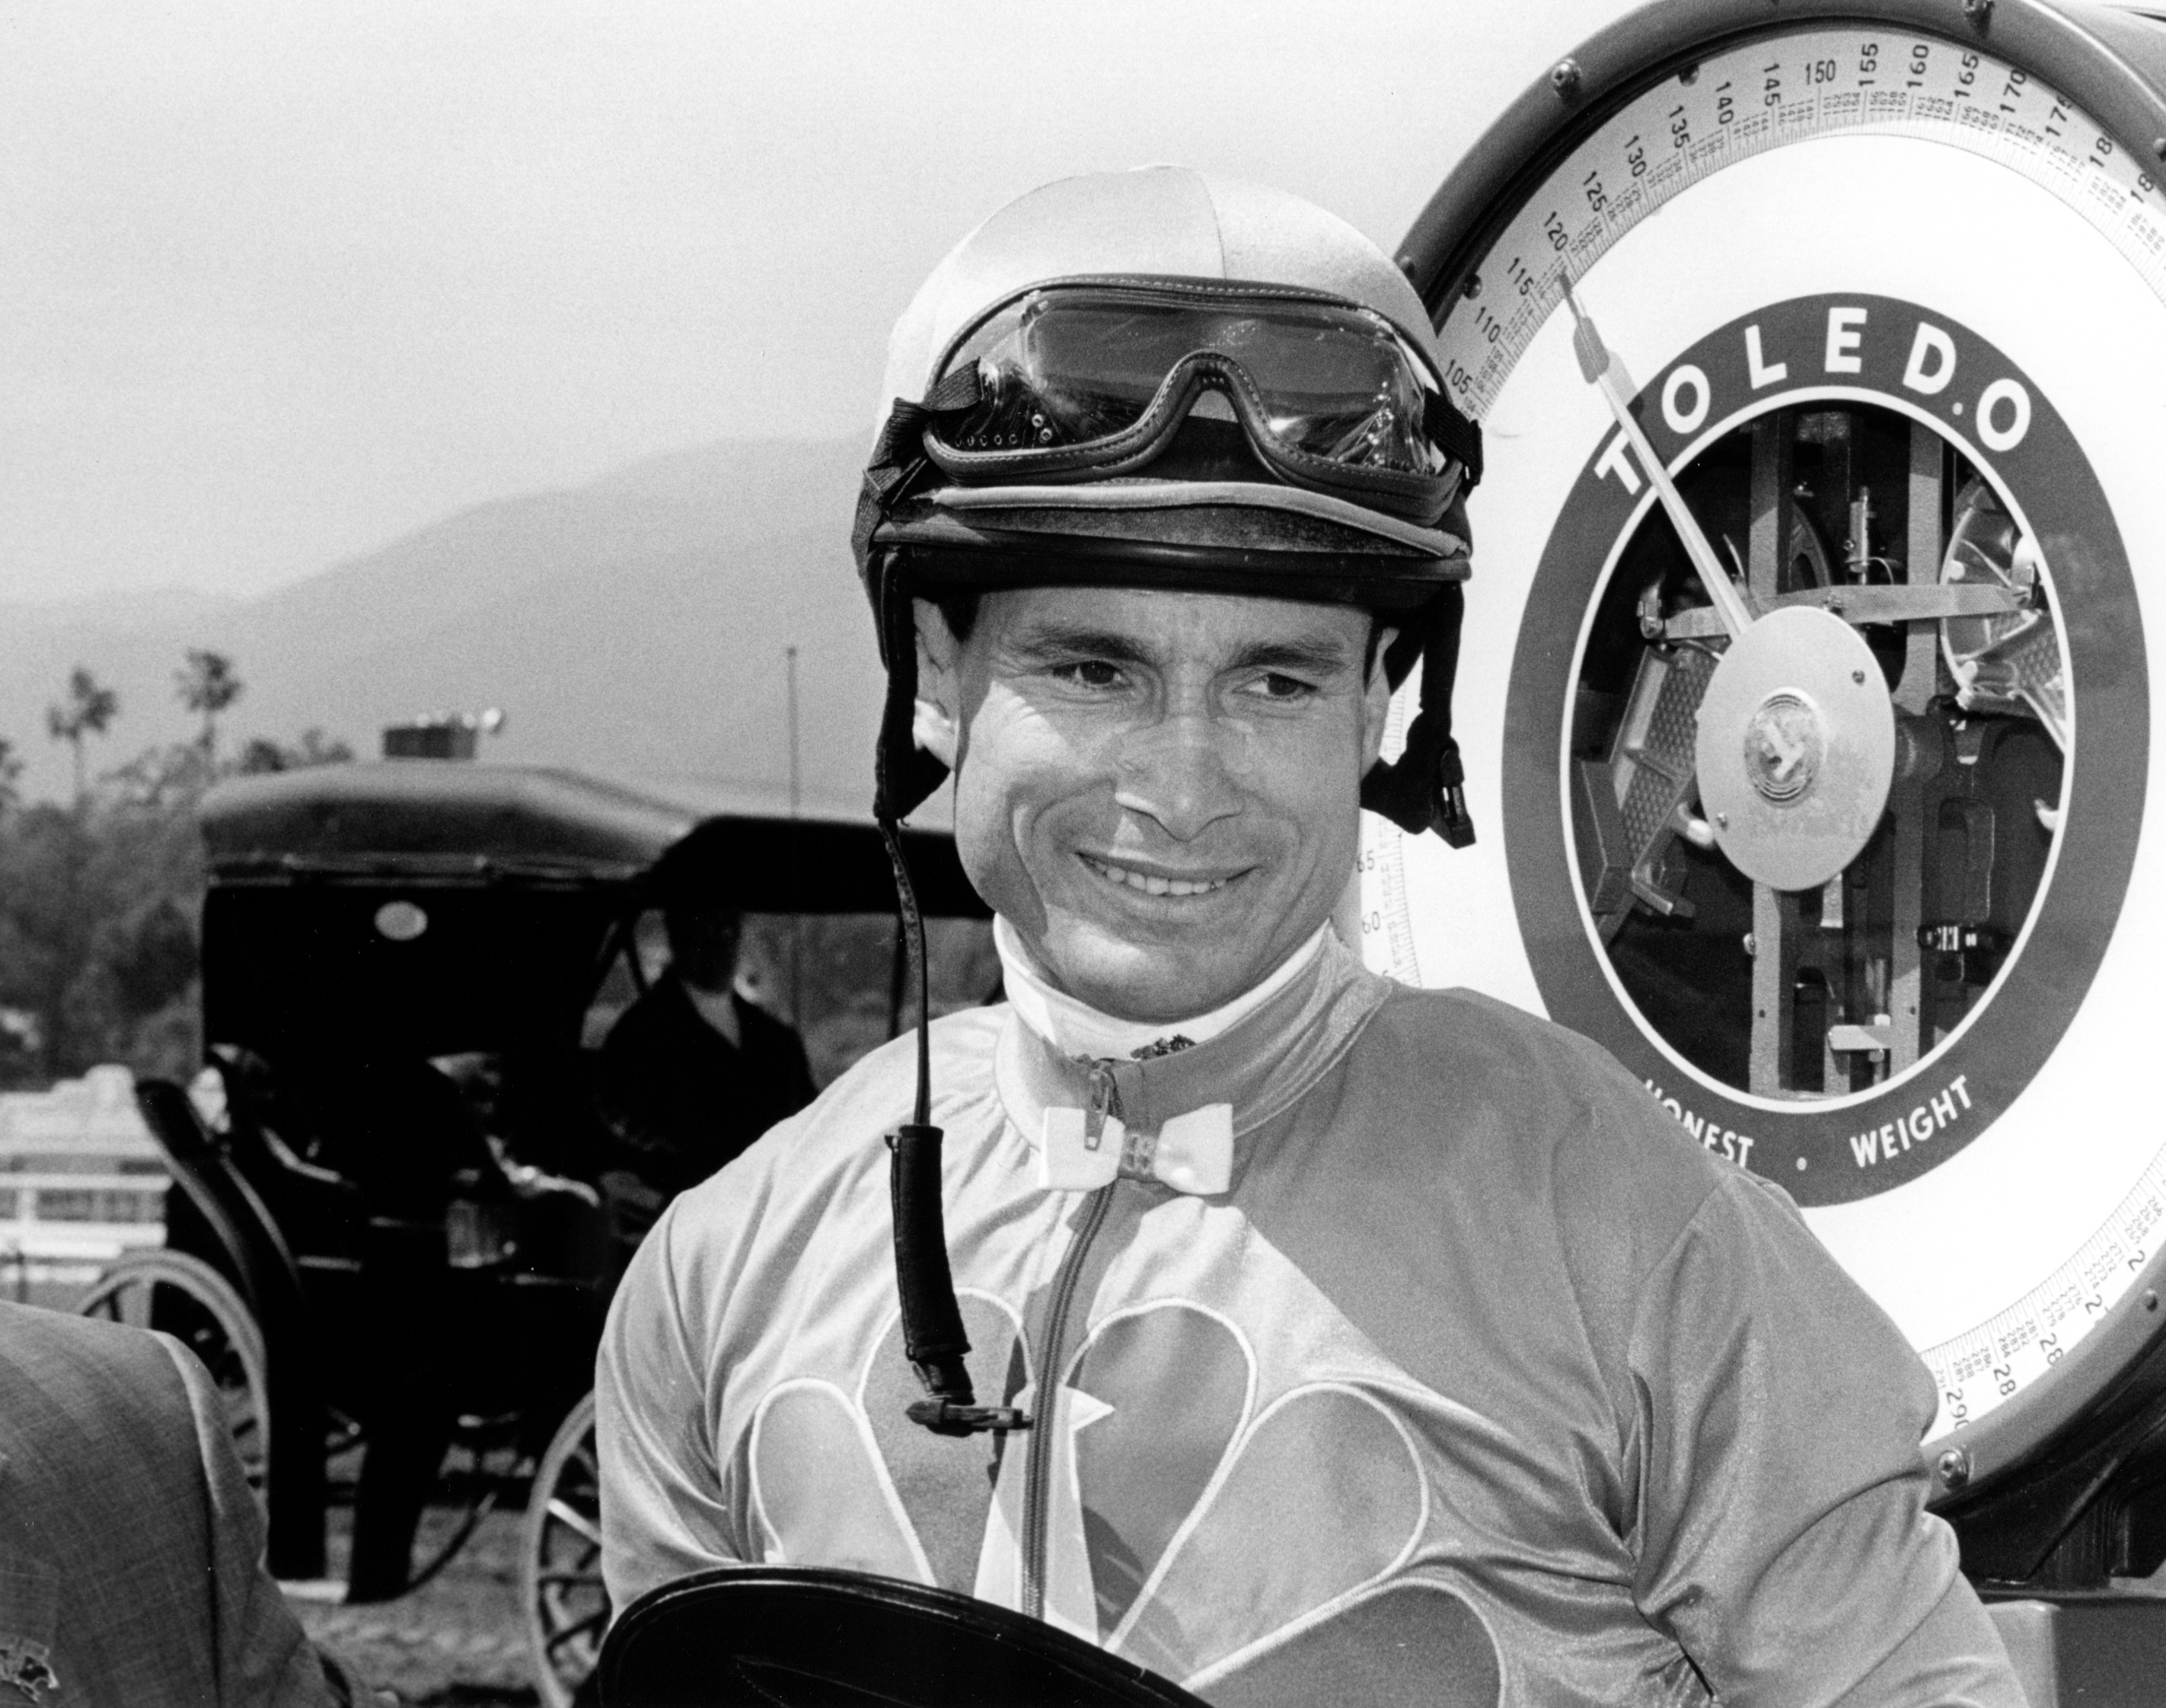 Alex Solis weighing in after winning the 2006 Santa Anita Derby (Bill Mochon/Museum Collection)